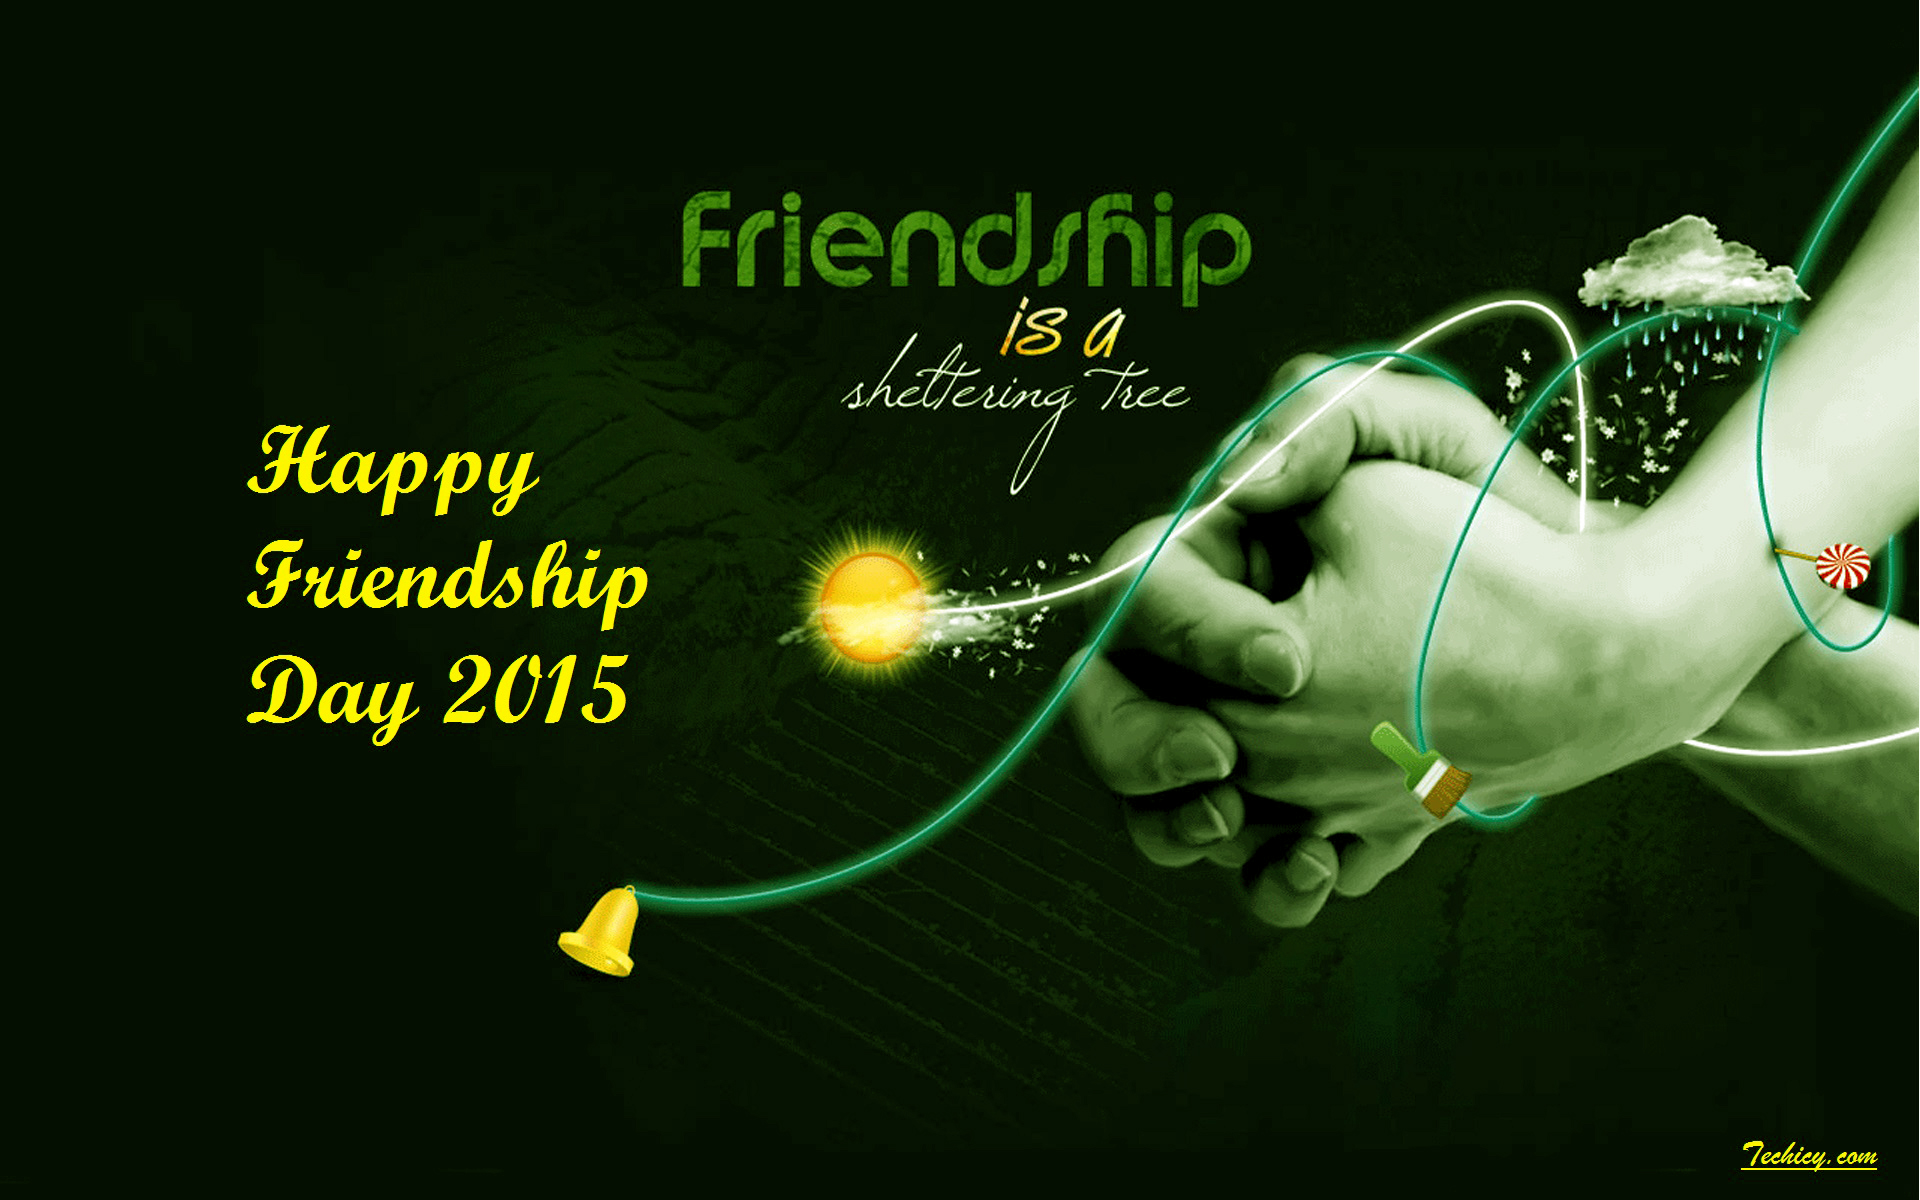 100 Top Friendship Status For Whatsapp In English